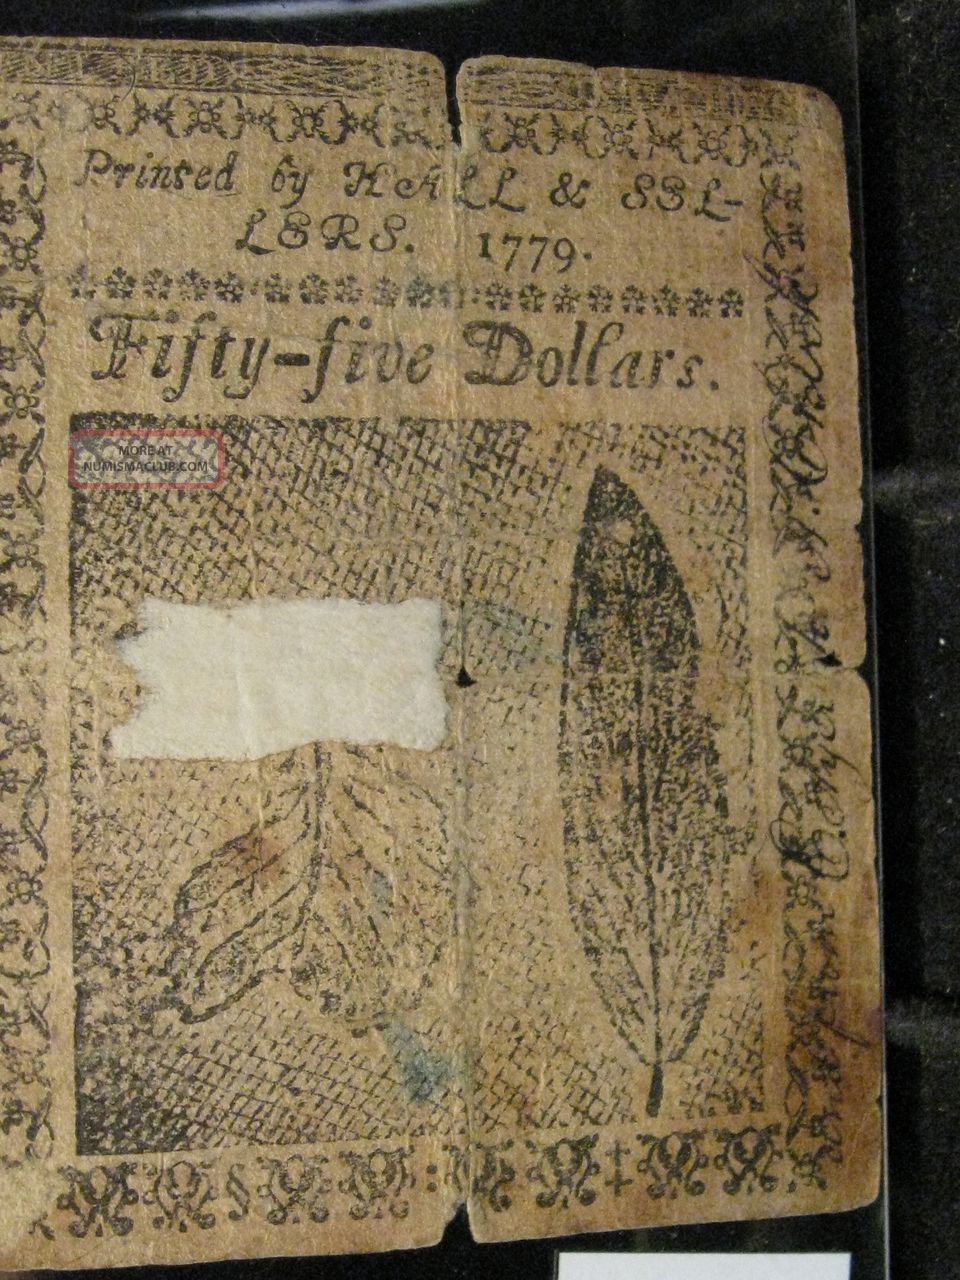 1779,  January 14 - Continental Us Colonial Note.  $55 Dollars.  Hall & Sellers Paper Money: US photo